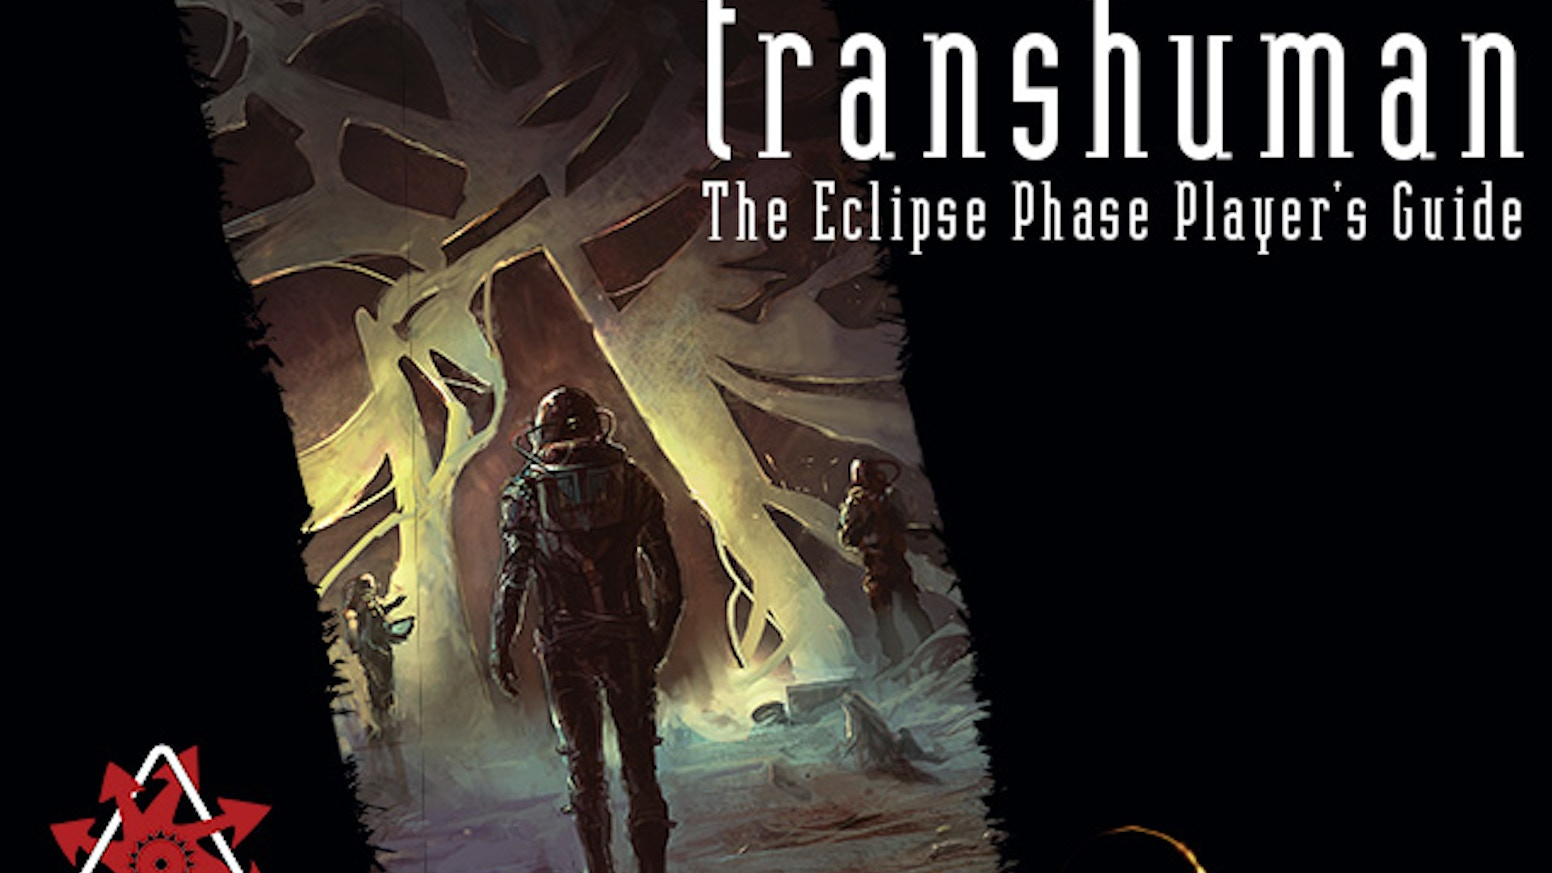 Transhuman: The Eclipse Phase Player's Guide by infomorph